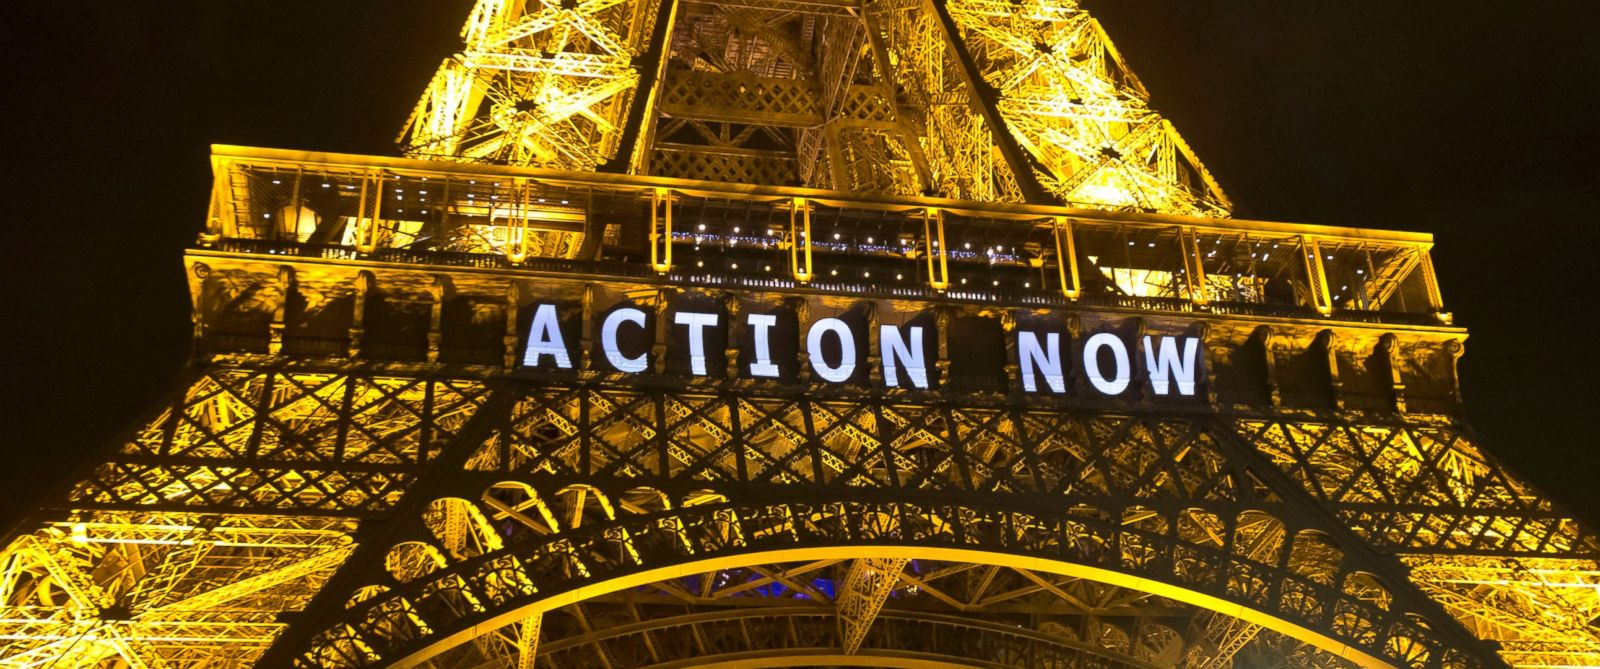 "PHOTO: The Eiffel Tower lights up with the slogan ""Action Now"" referring to the COP21, United Nations Climate Change Conference in Paris, Dec. 6, 2015."